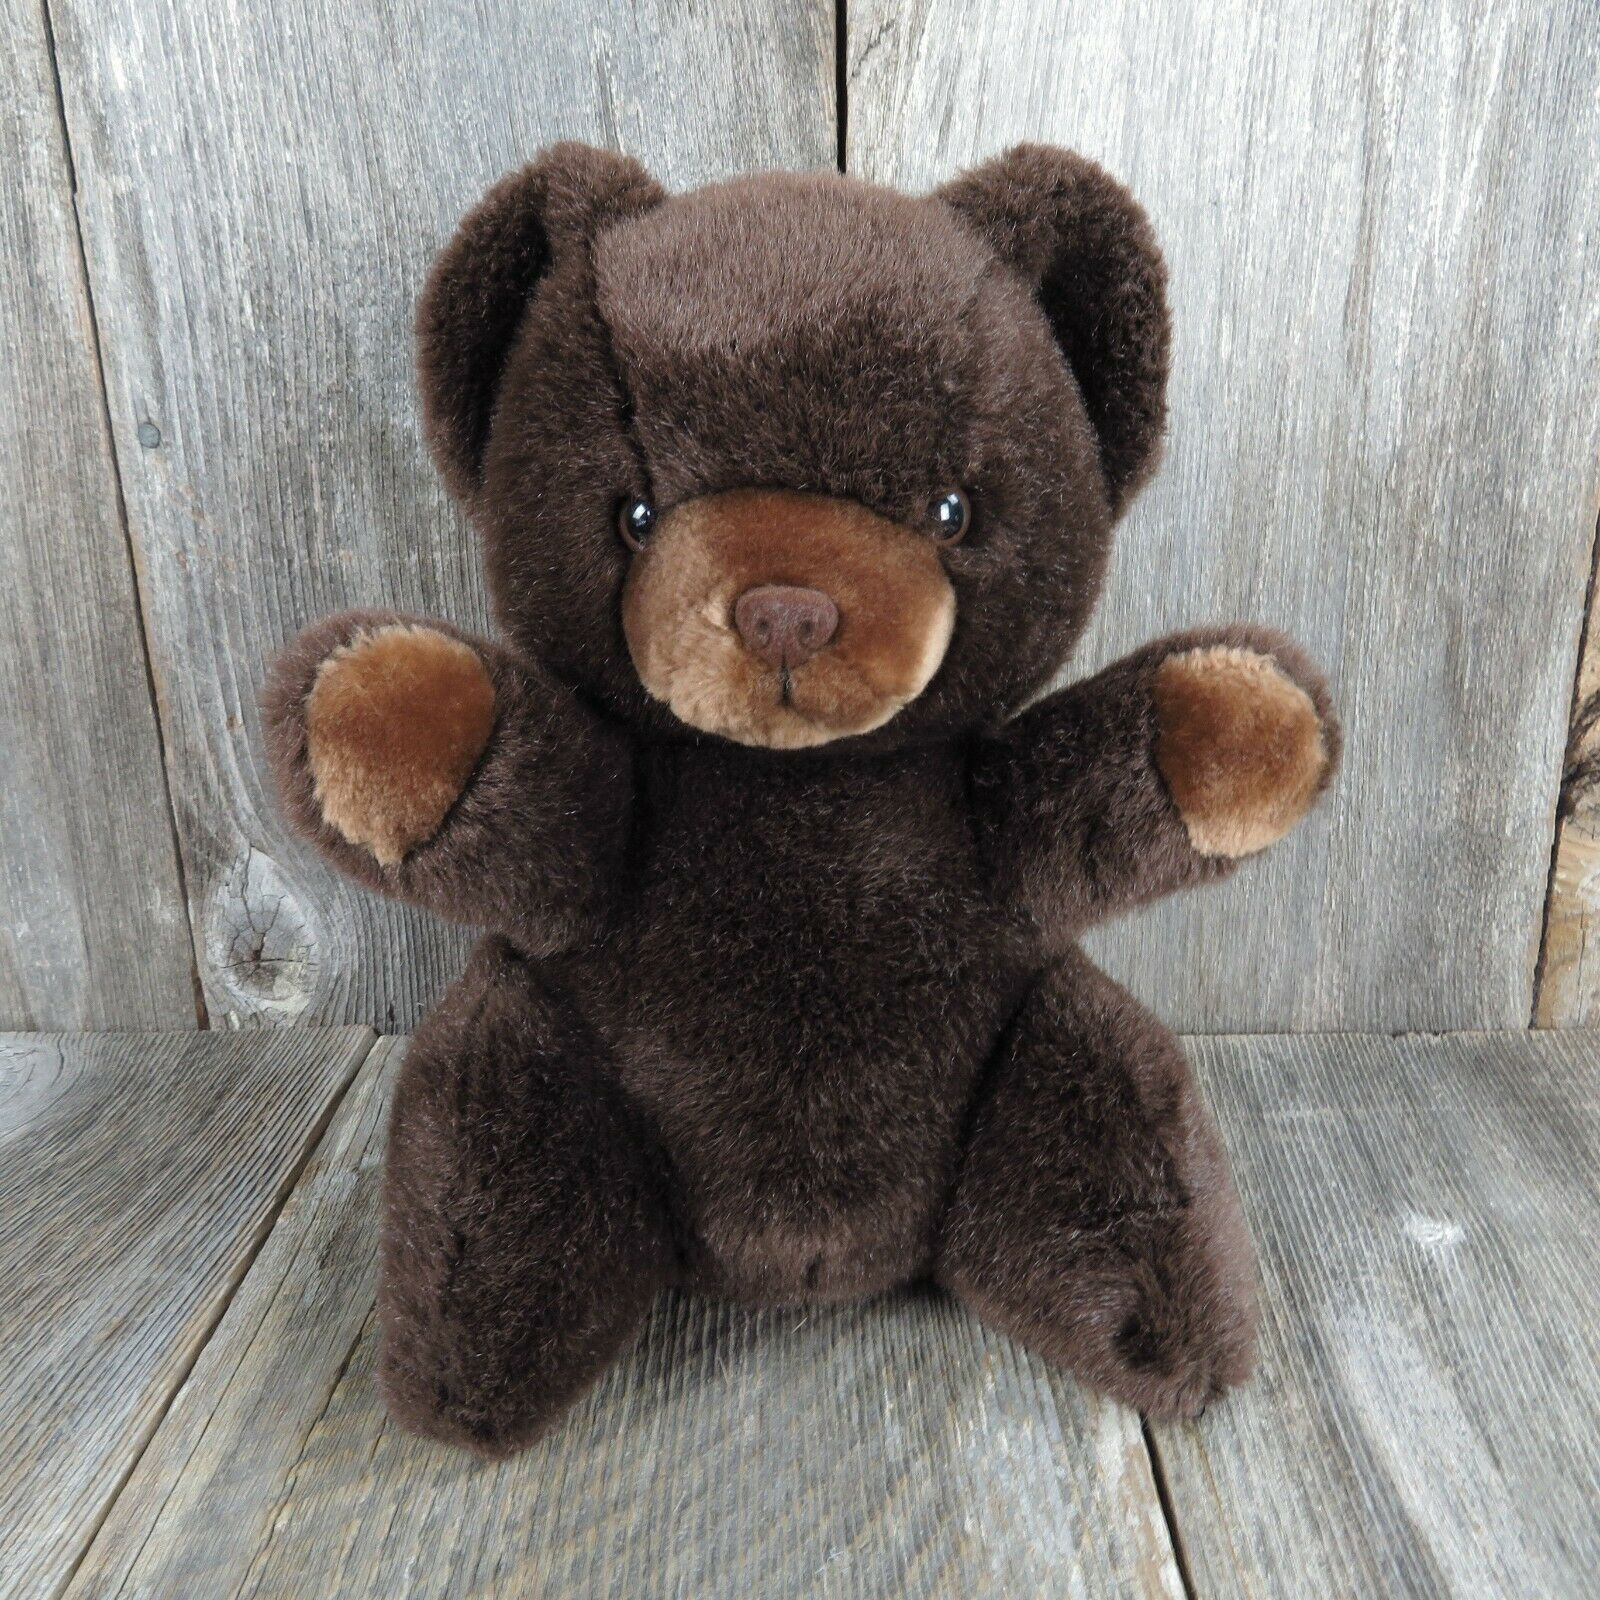 Primary image for Vintage Teddy Bear Plush Brown Flocked Nose Russ Grizzly Love Pet Stuffed Animal